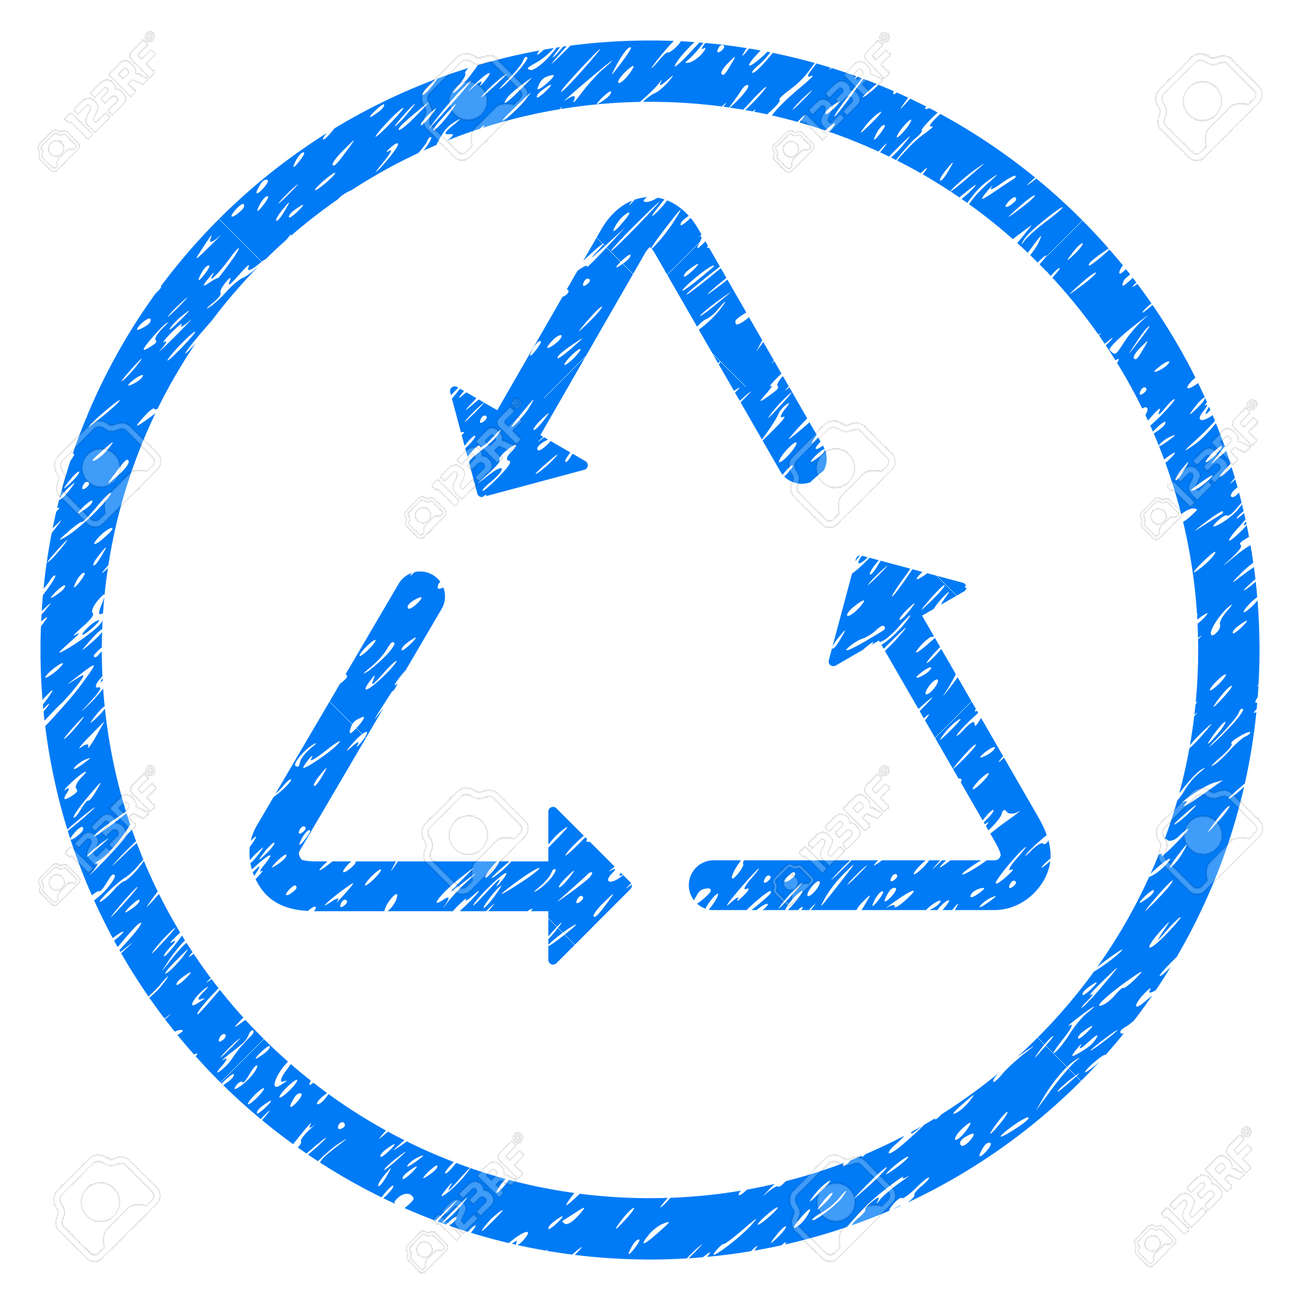 Circle triangle symbol images symbols and meanings recycling triangle grainy textured icon inside circle for overlay recycling triangle grainy textured icon inside circle buycottarizona Image collections